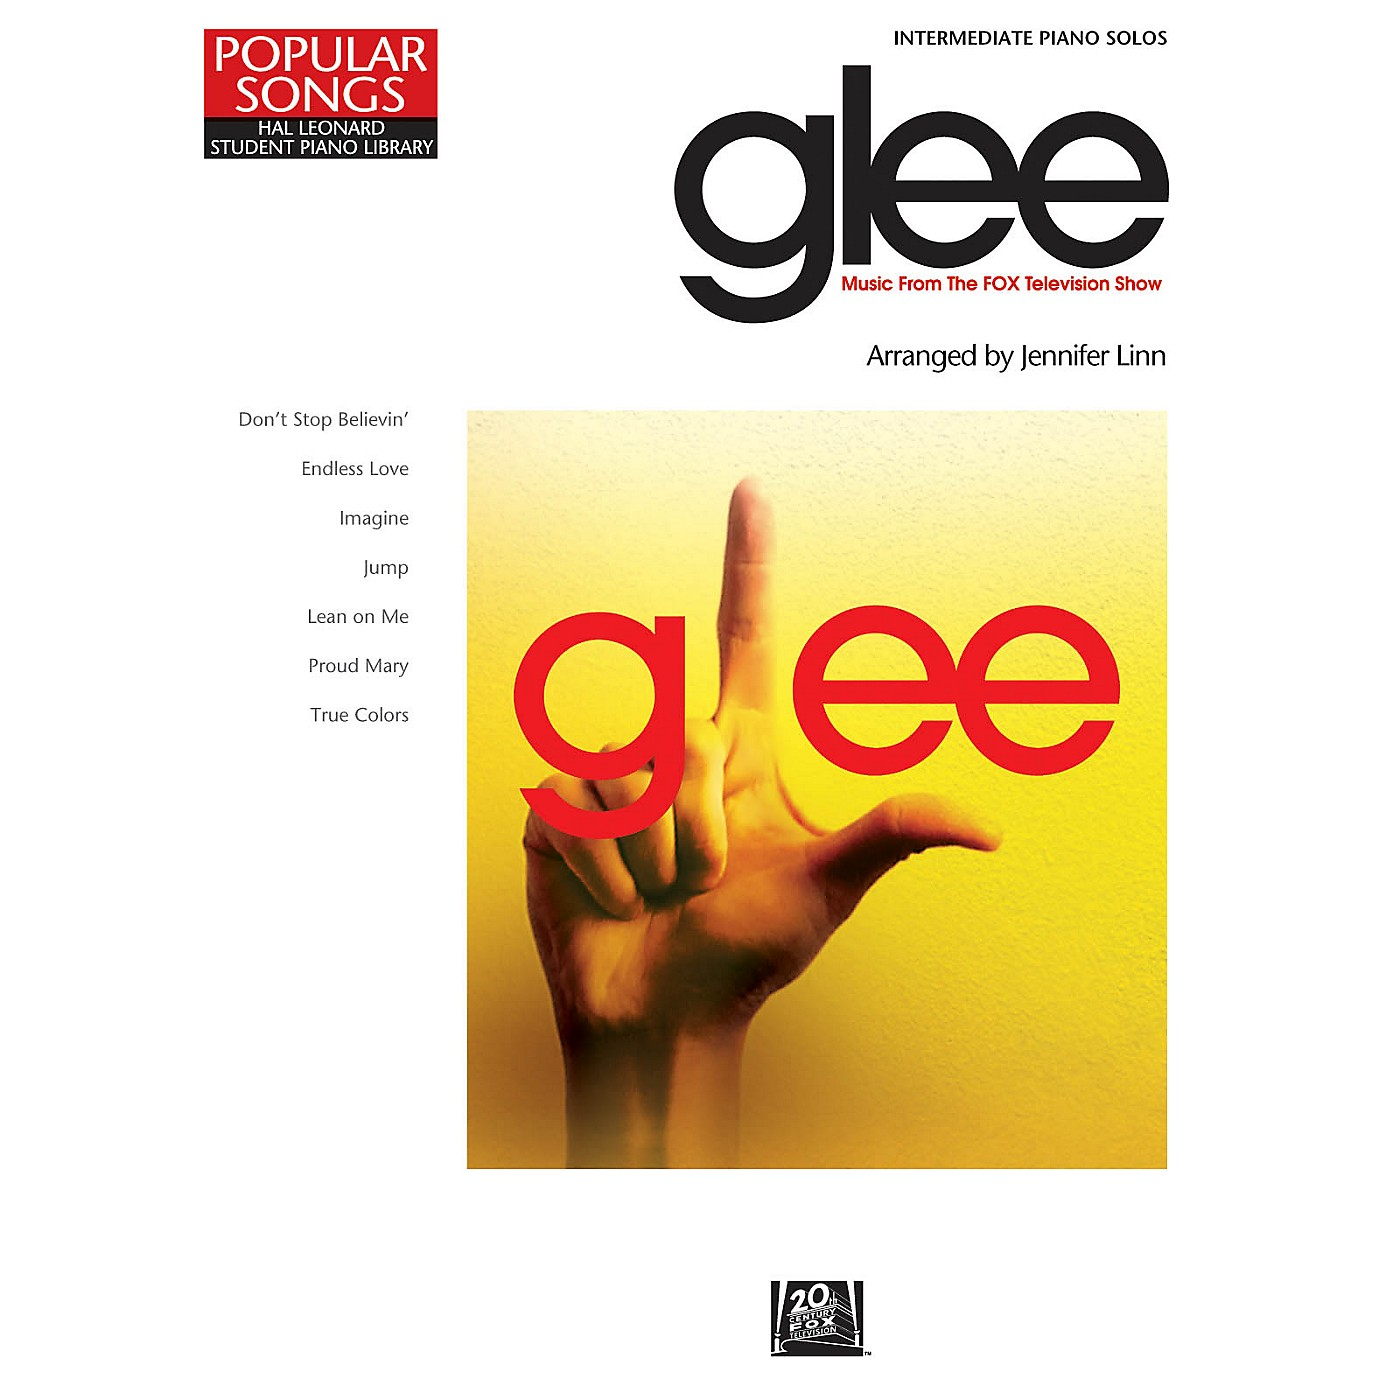 Hal Leonard Glee - Music from the FOX Television Show Piano Library Series Book (Level Inter) thumbnail